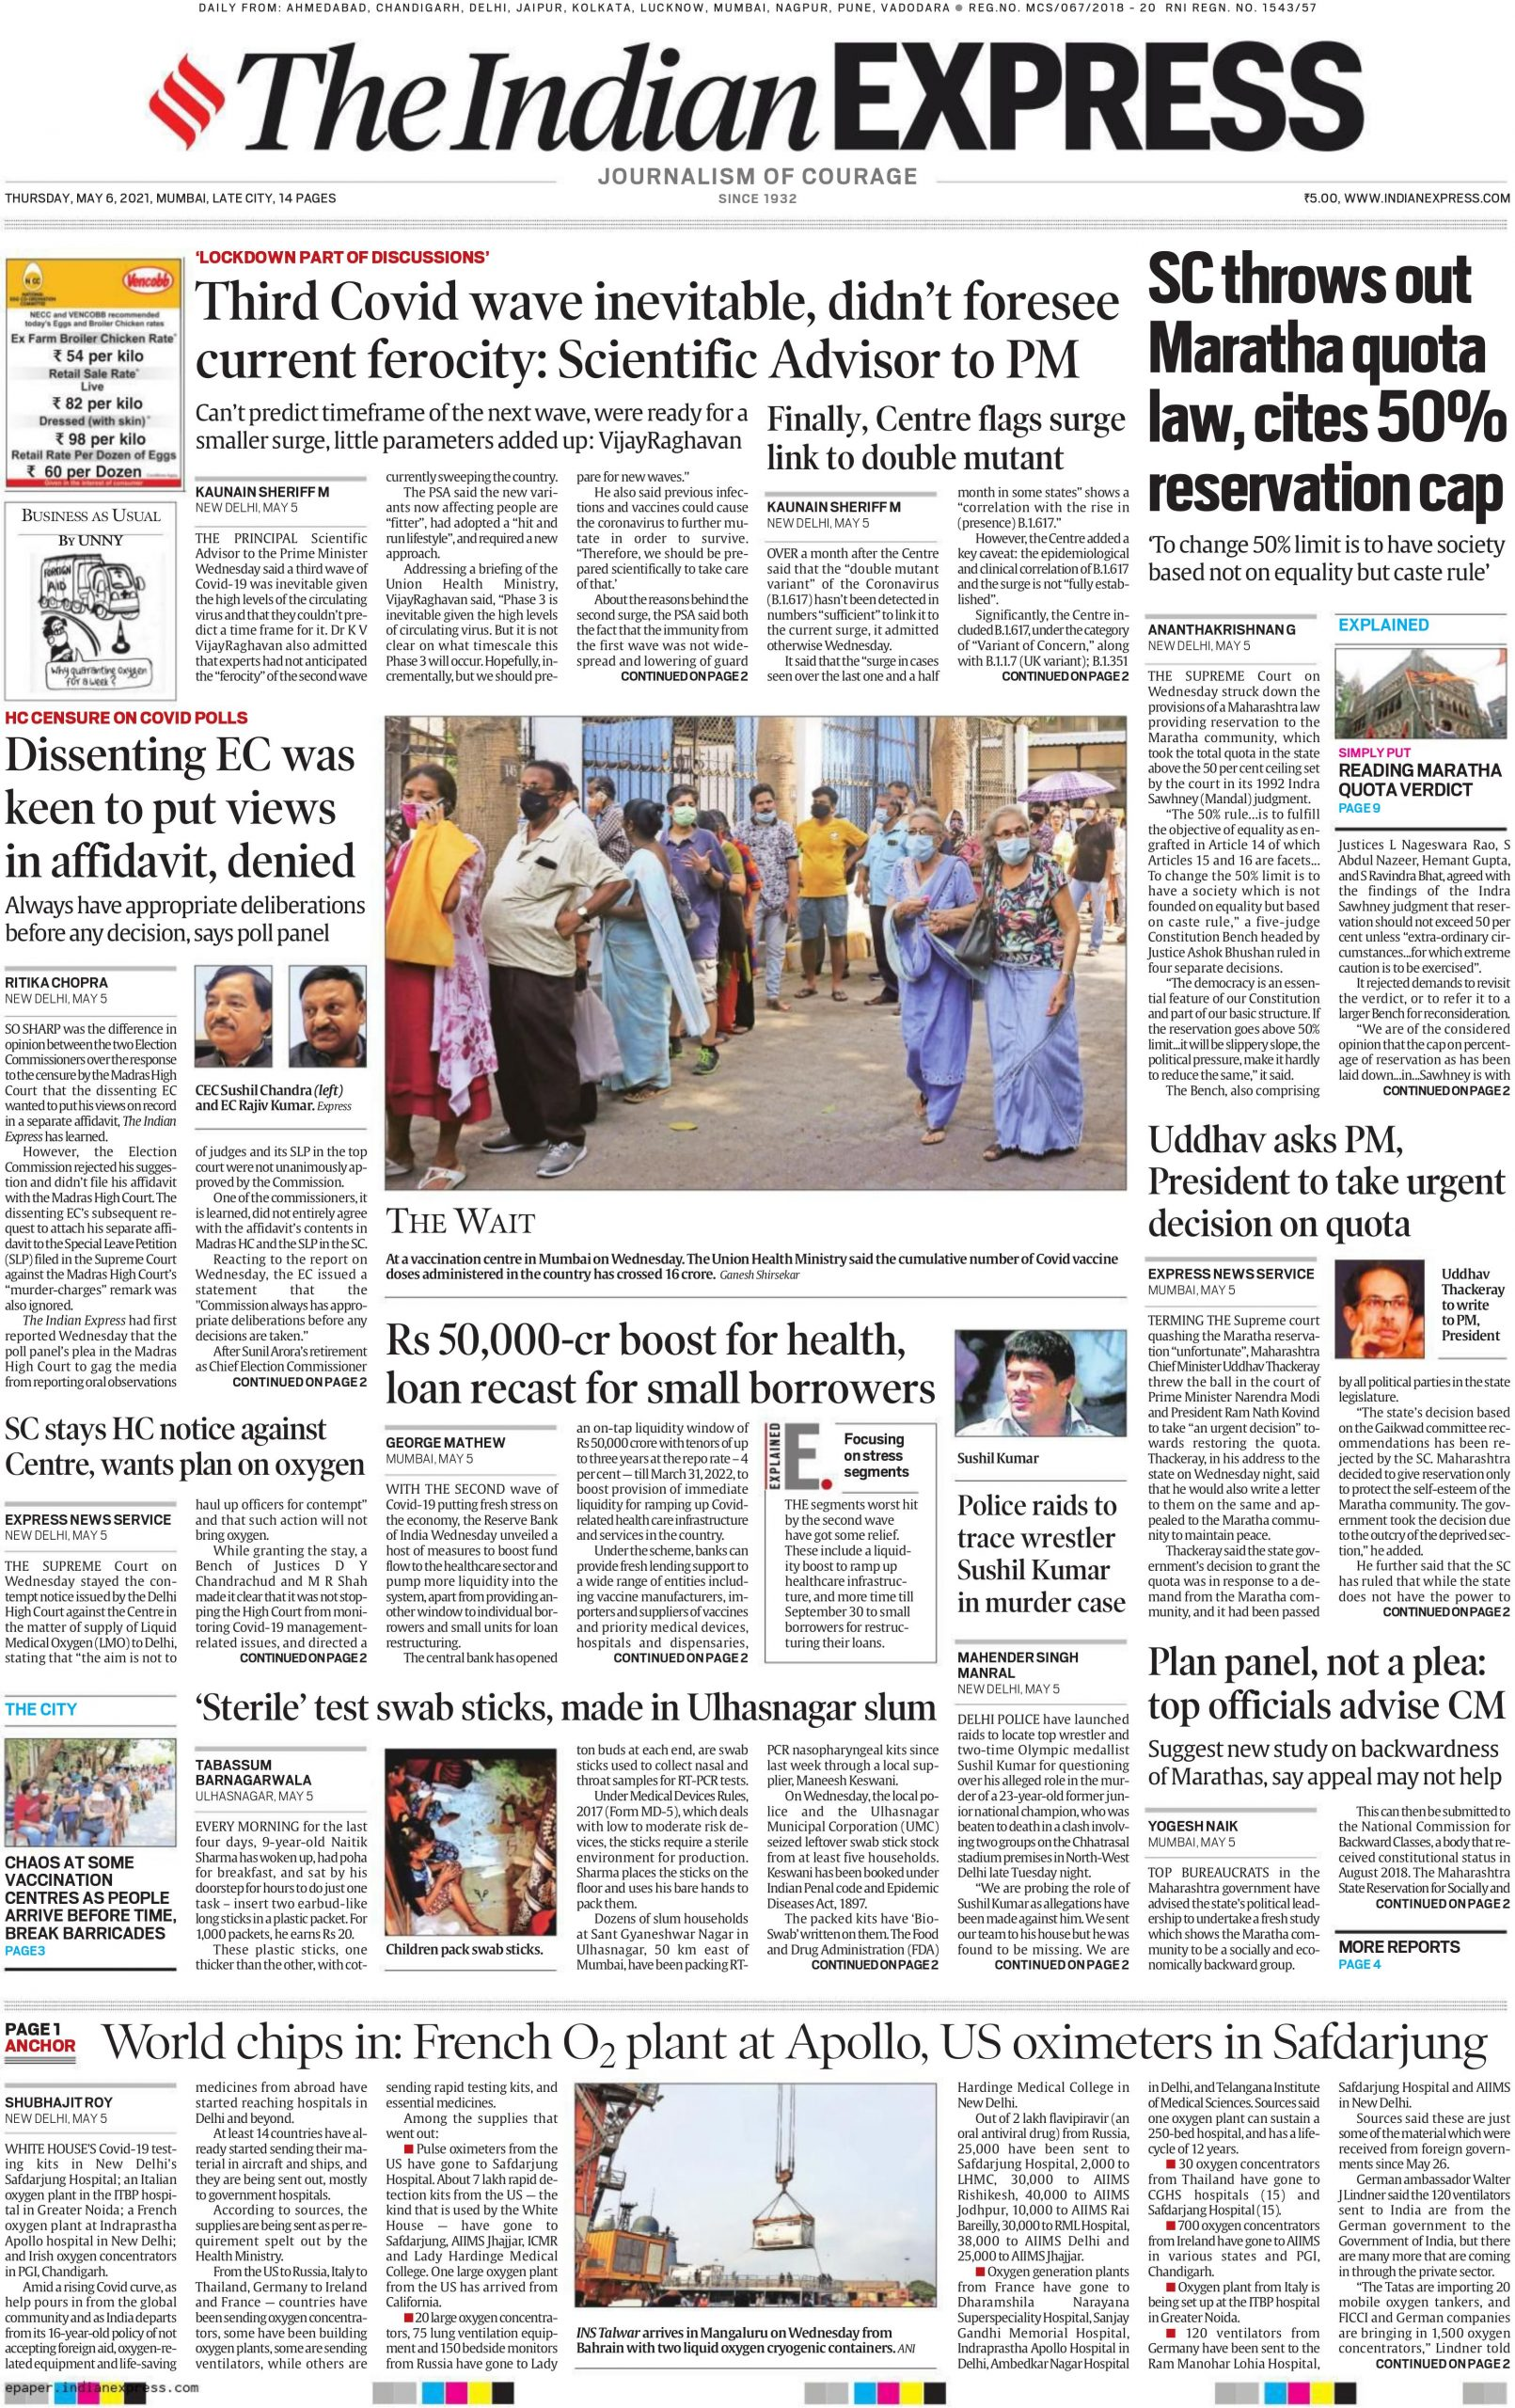 The Indian Express 6th May 2021